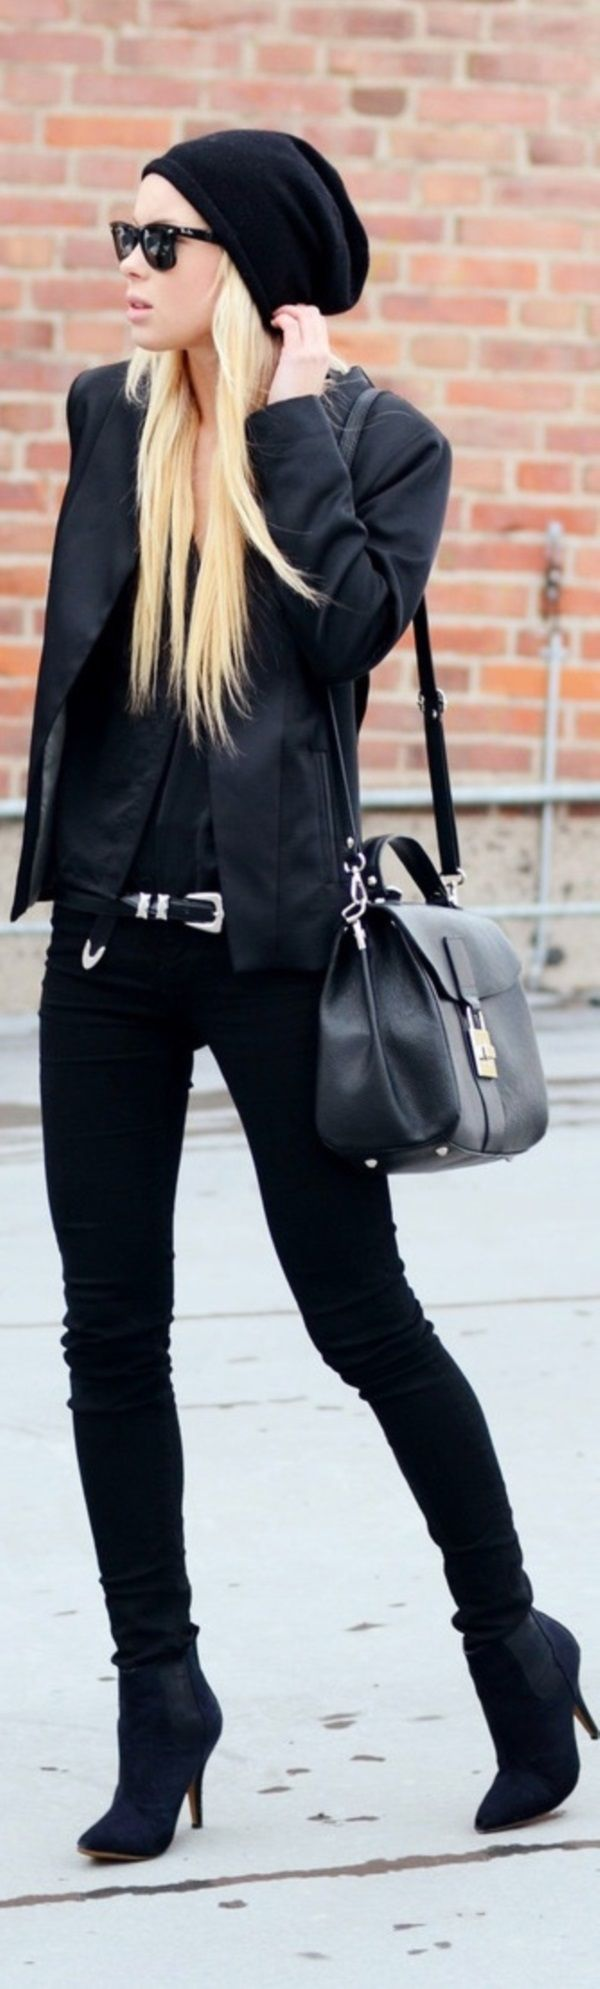 Casual edgy all black done right  celebrity fashion